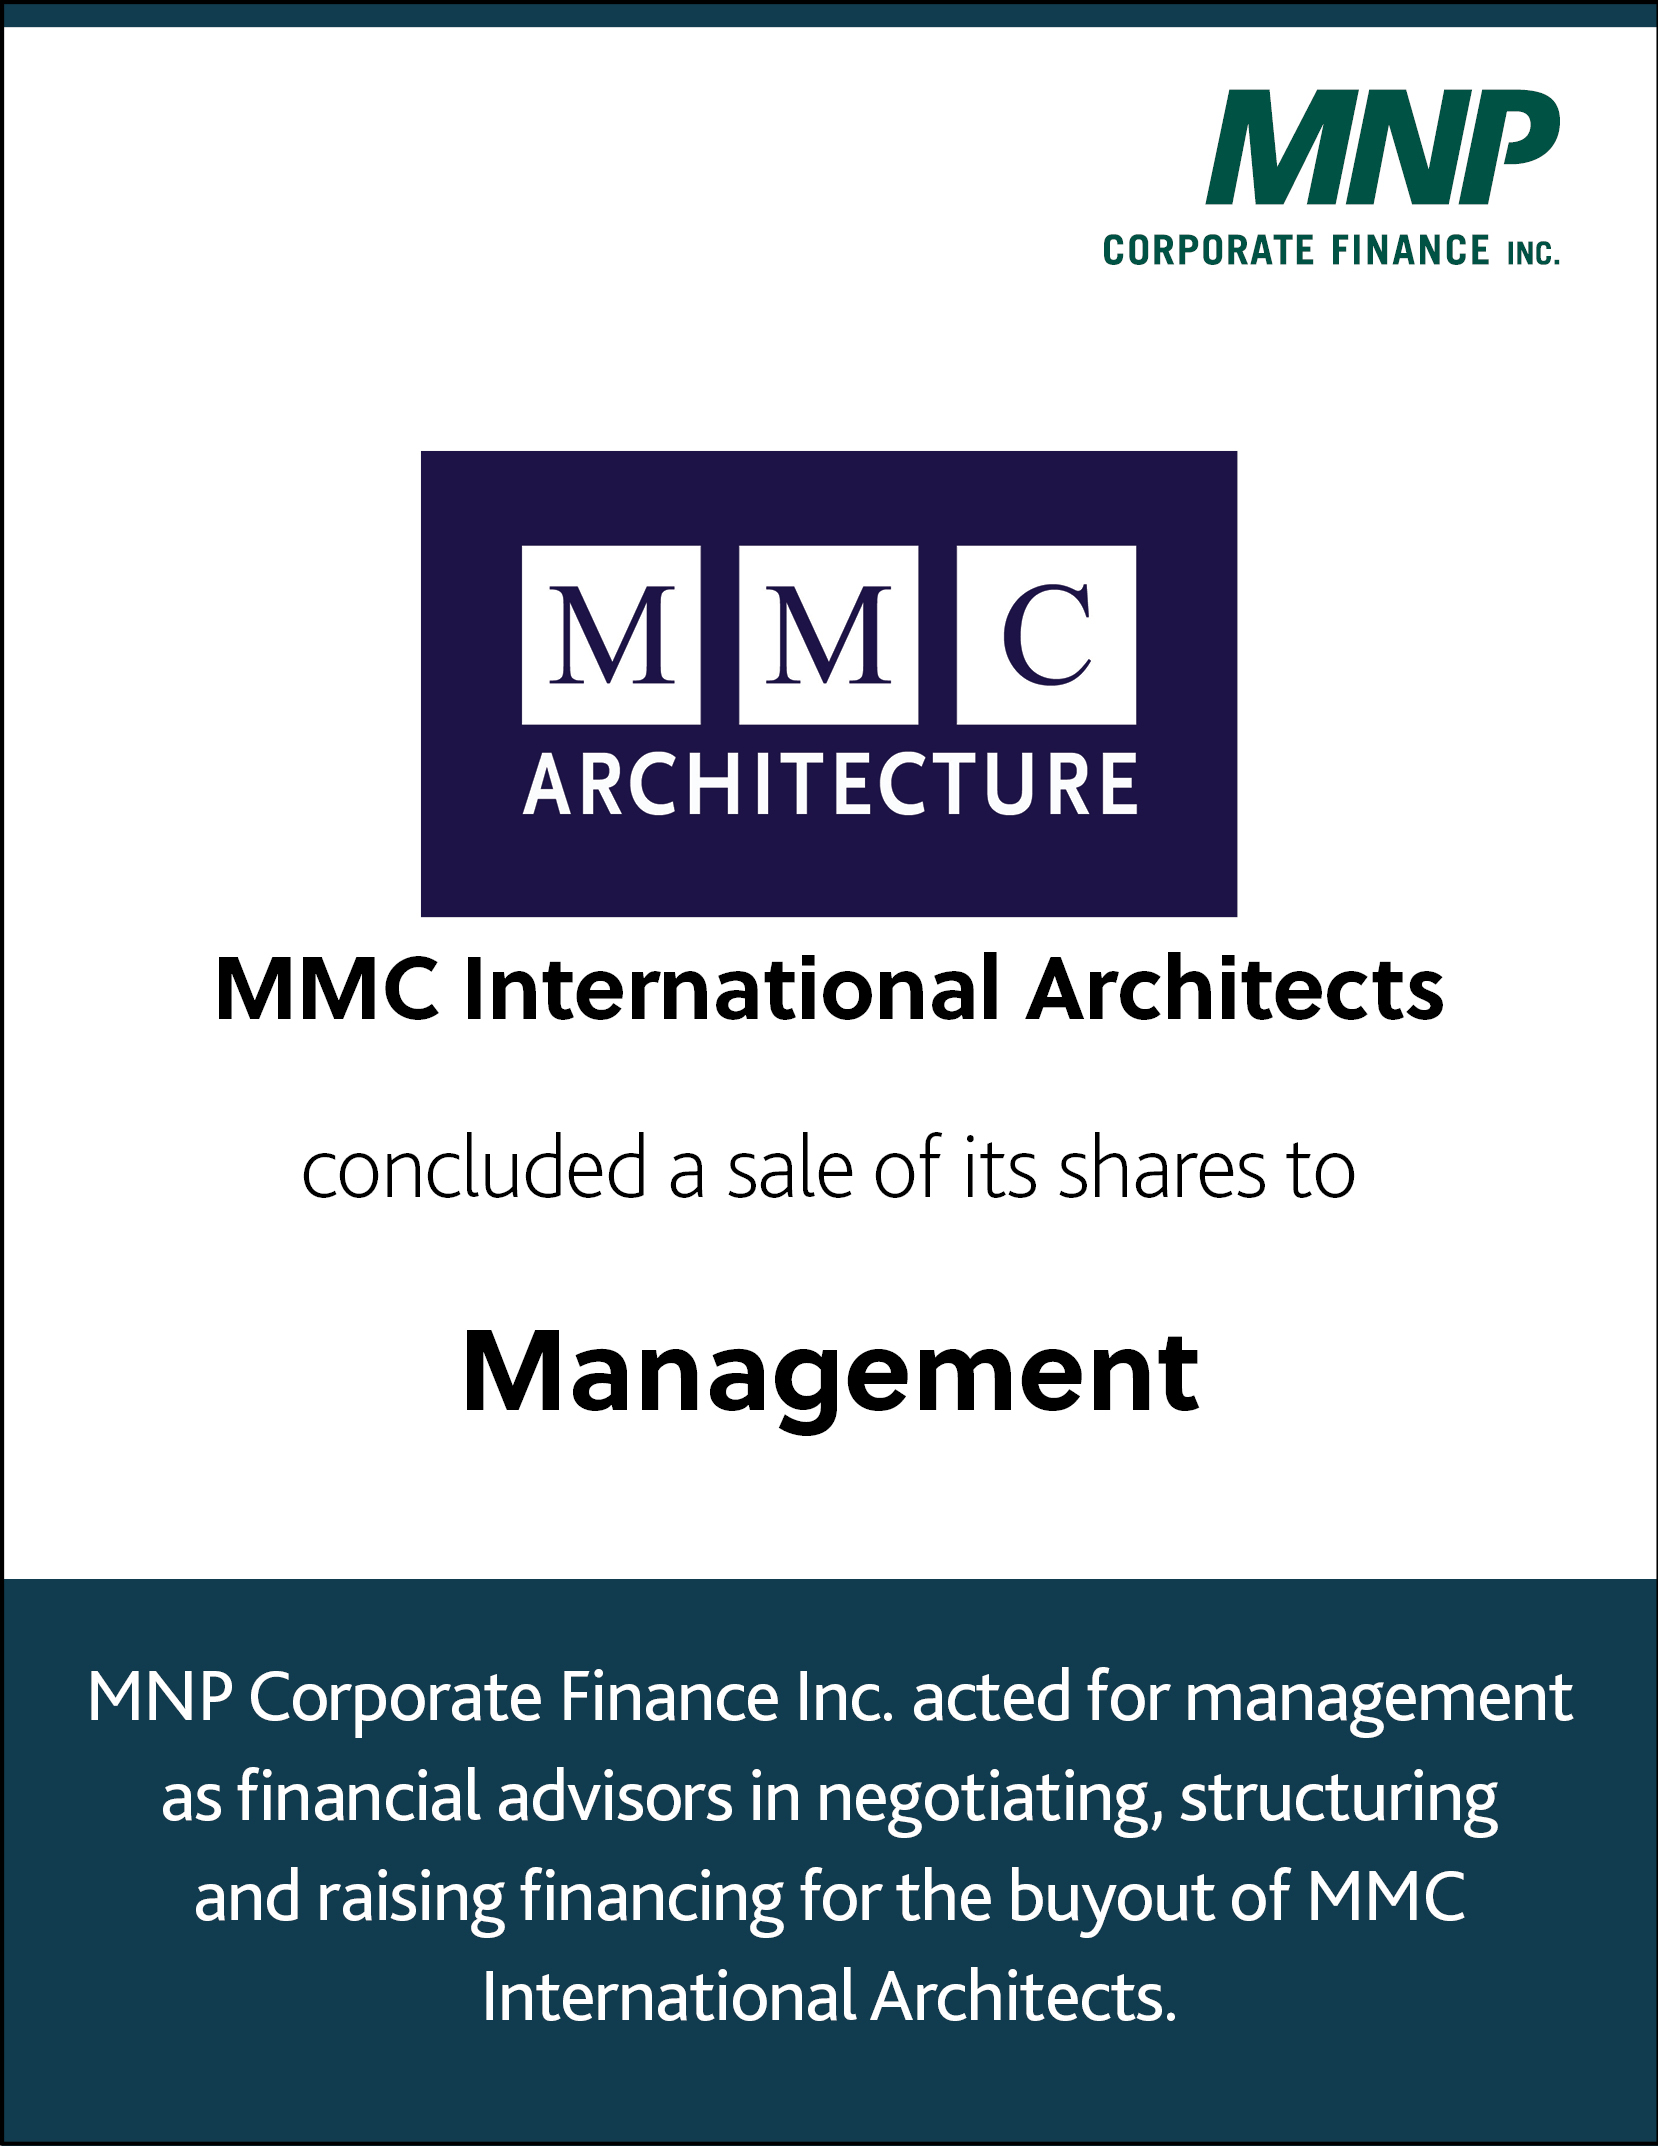 MMC International Architects concluded a sale of its shares to Management